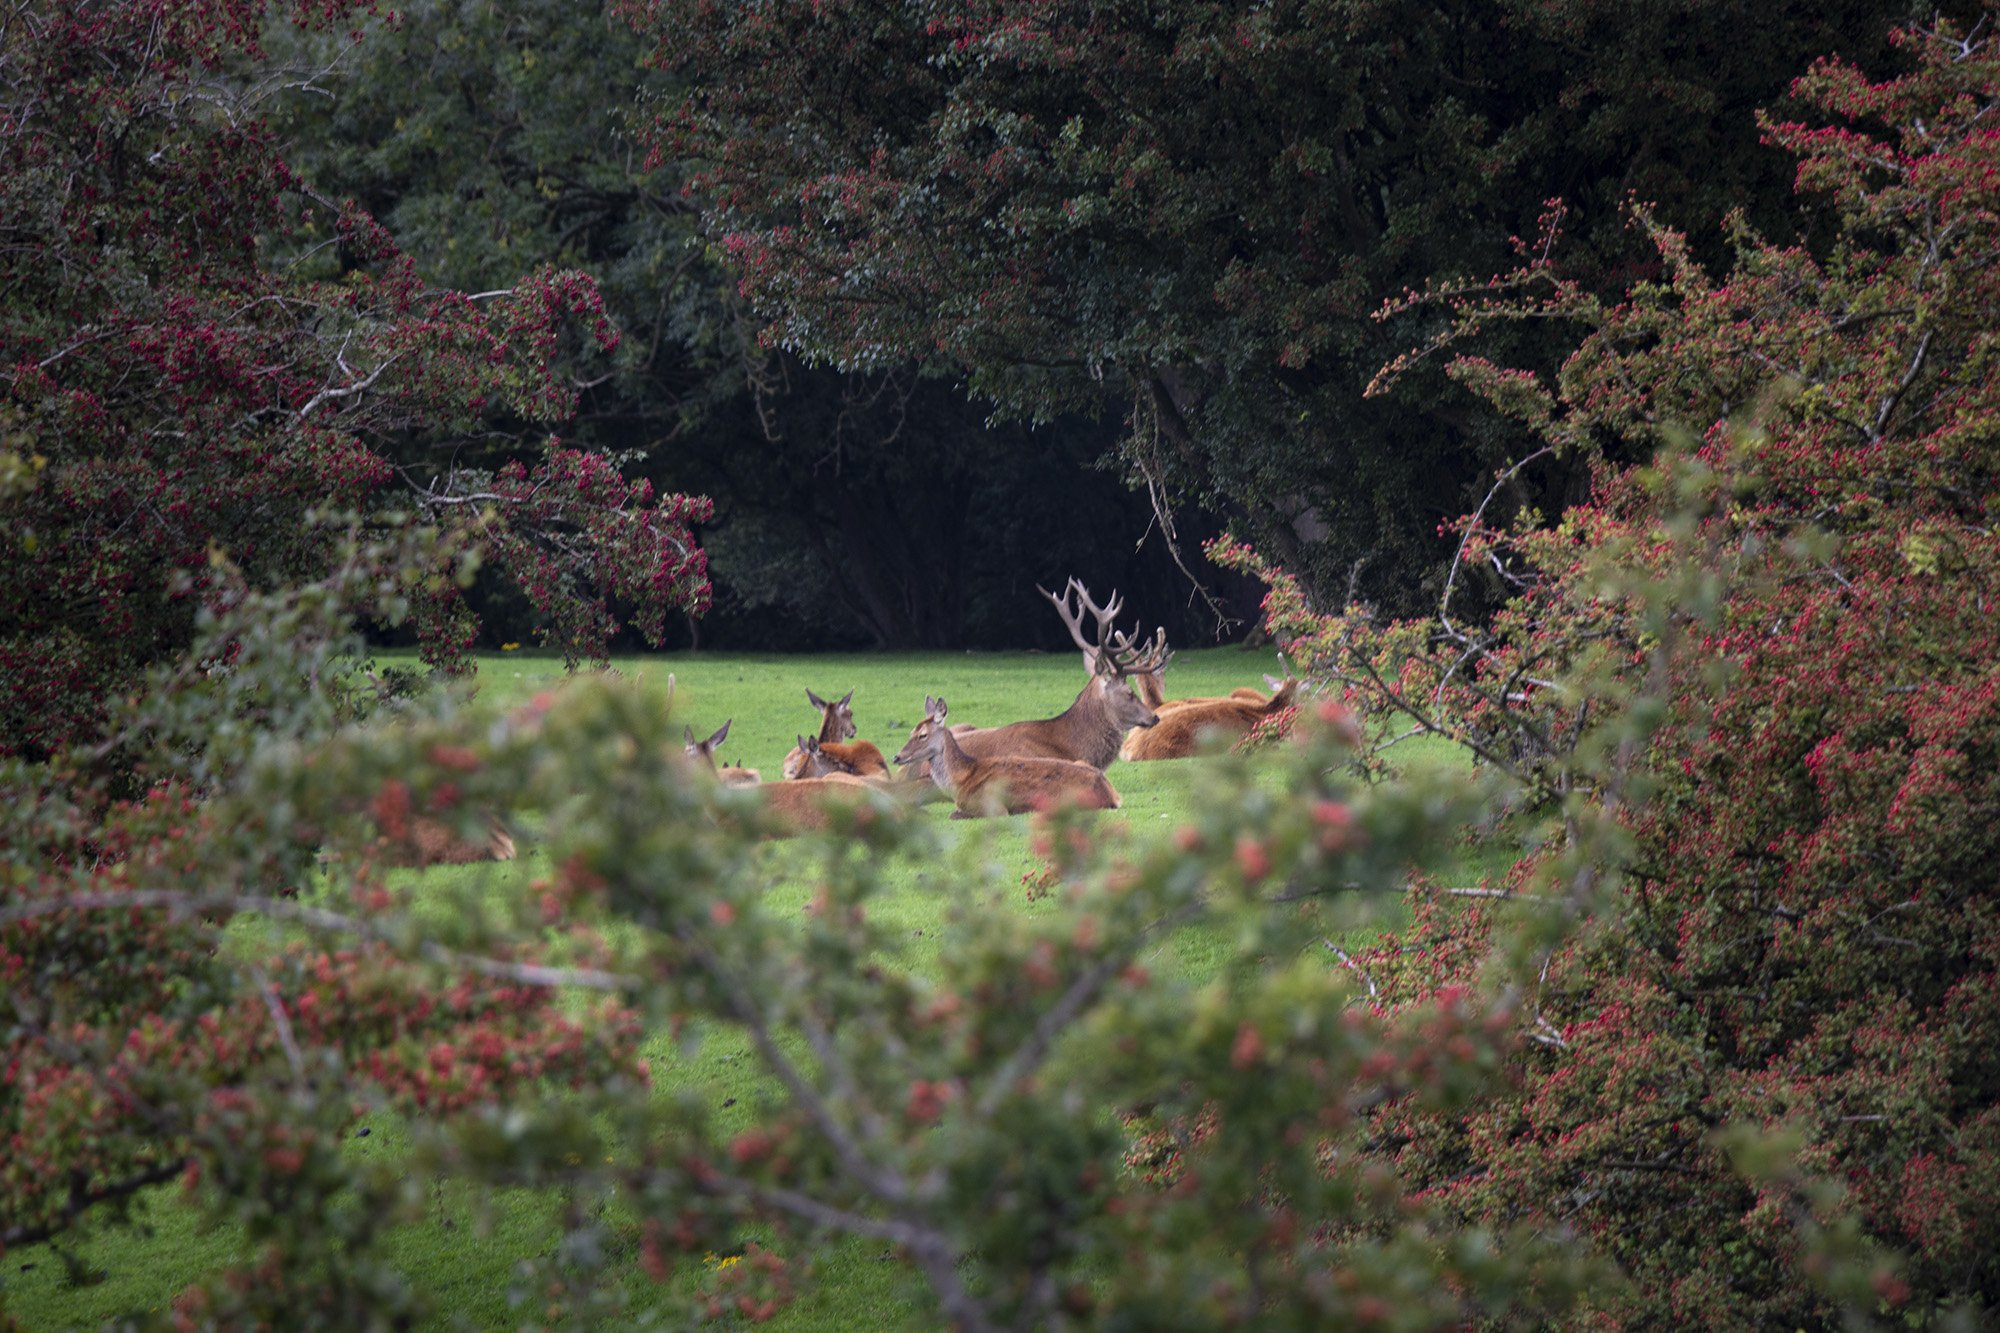 Stag and deer herd